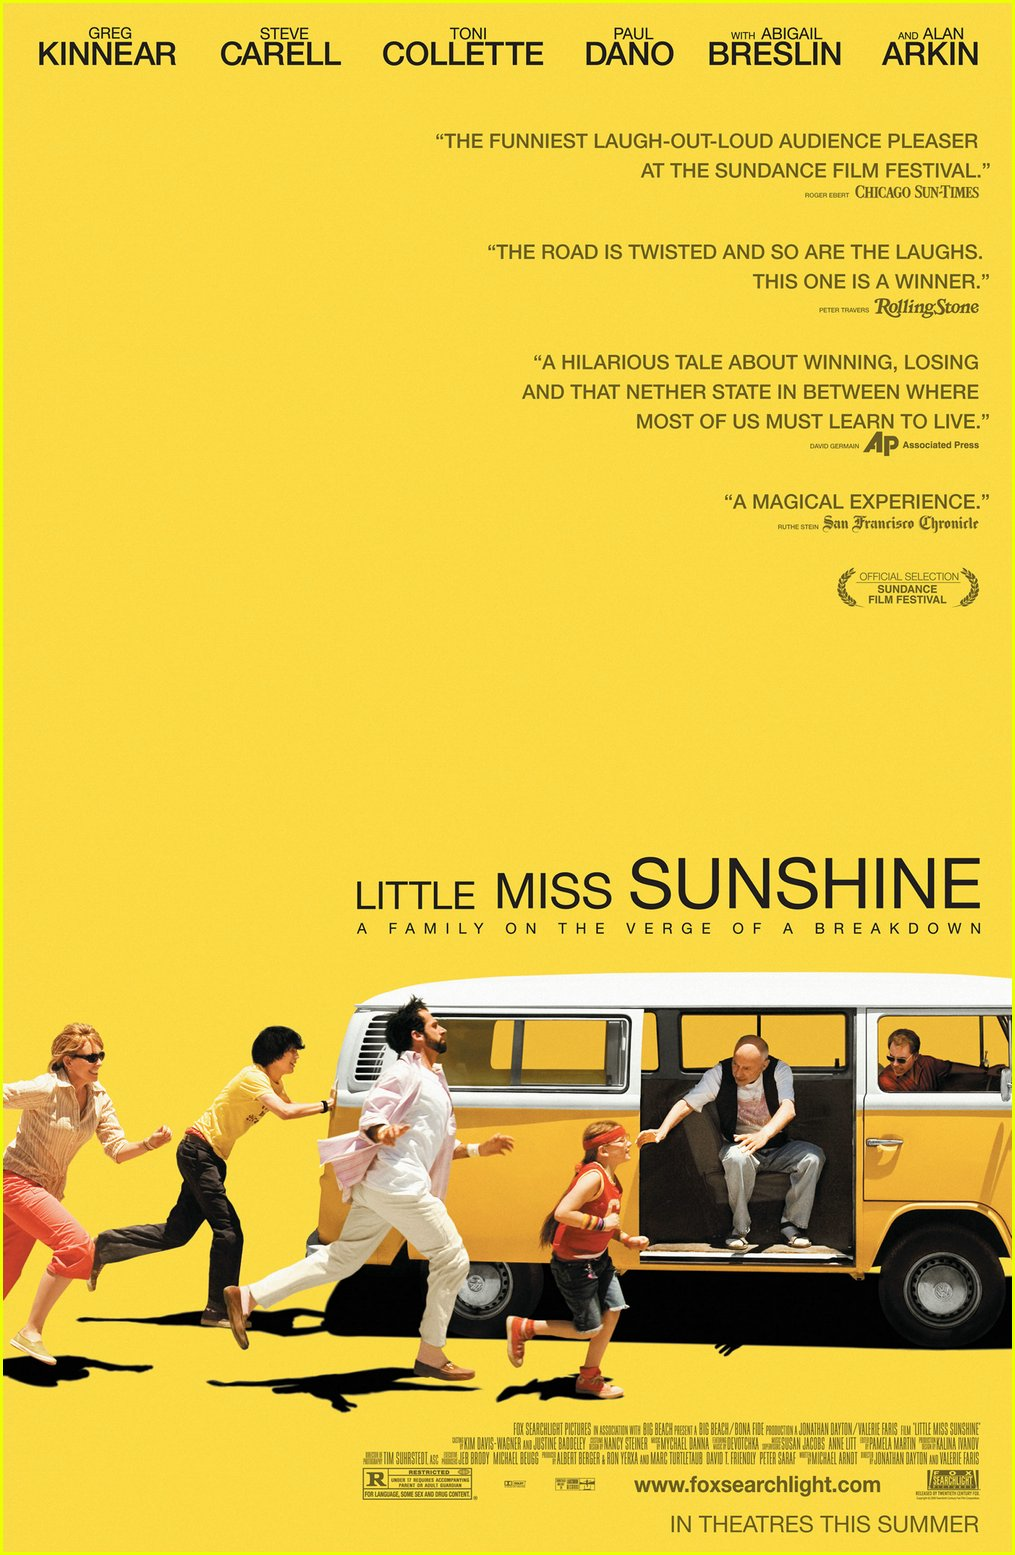 little-miss-sunshine-stills01.jpg